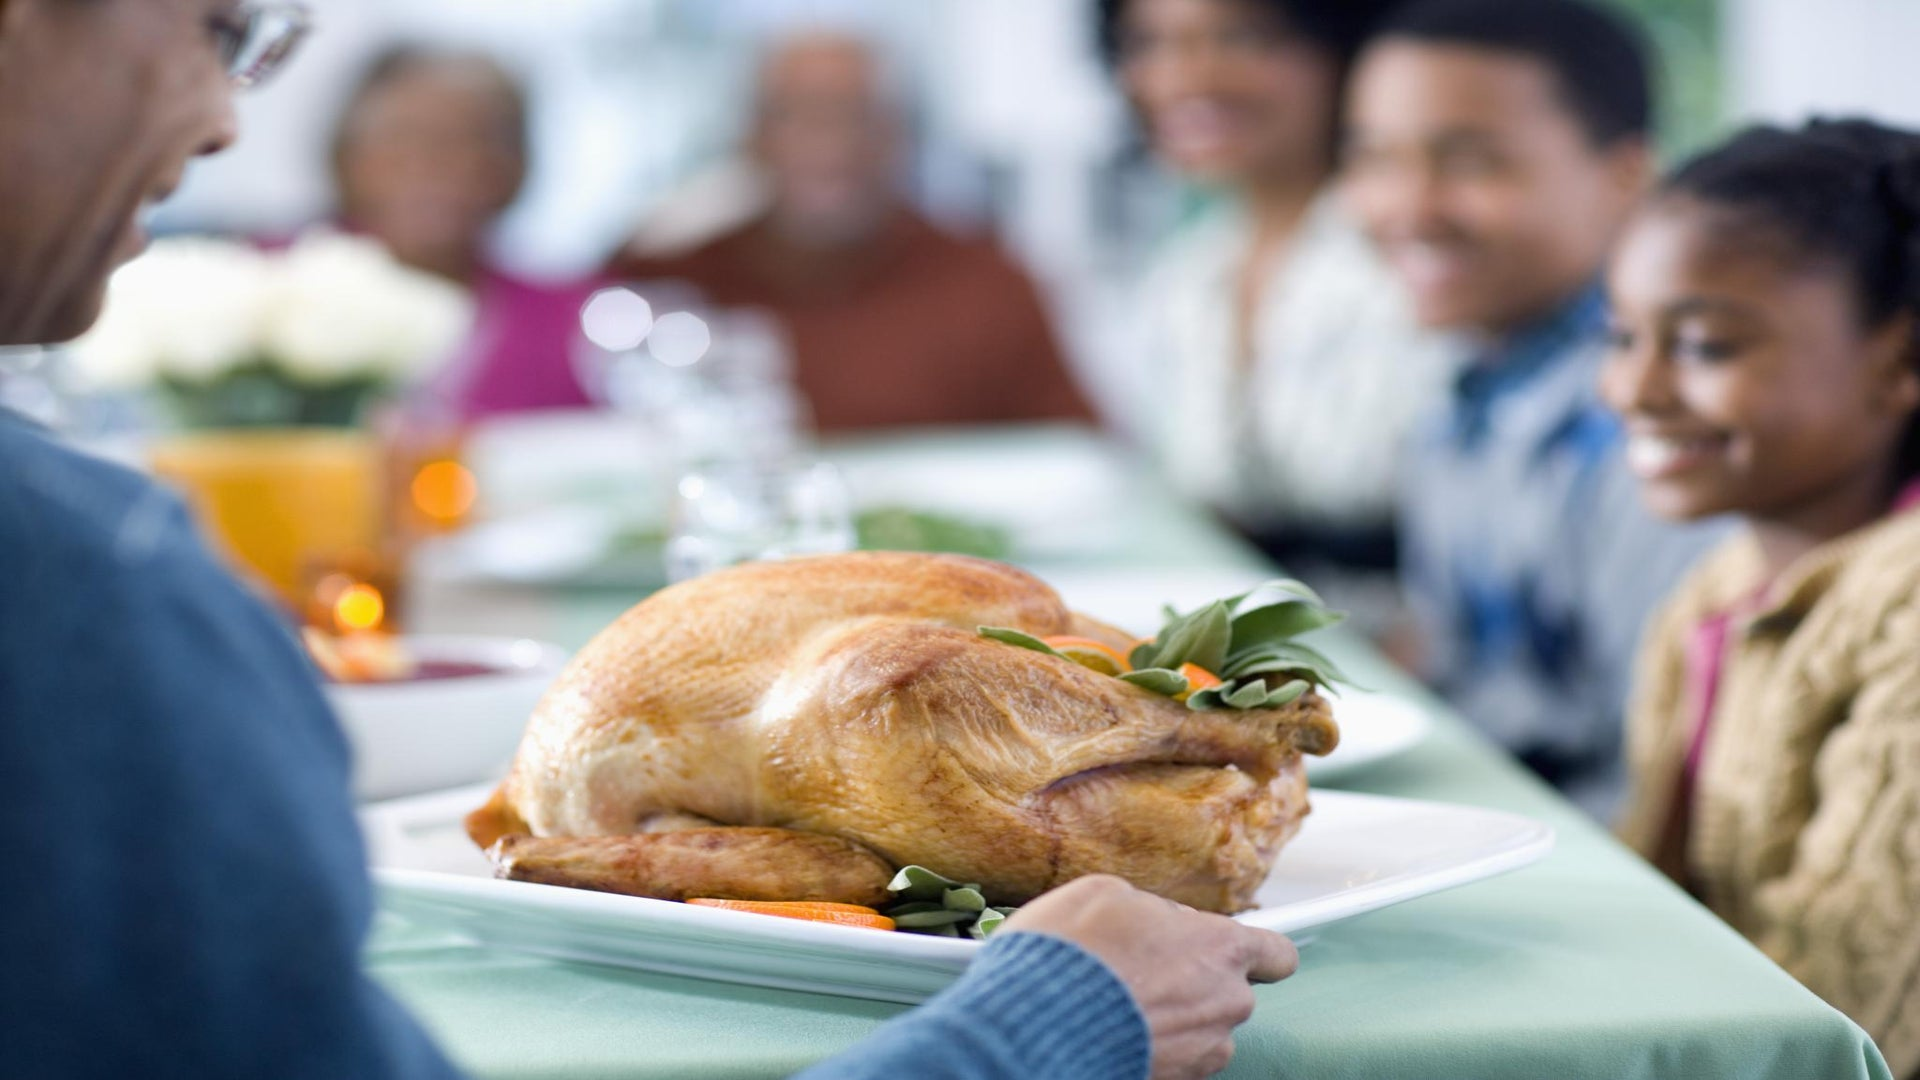 ESSENCE Poll: What Are You Most Thankful For?